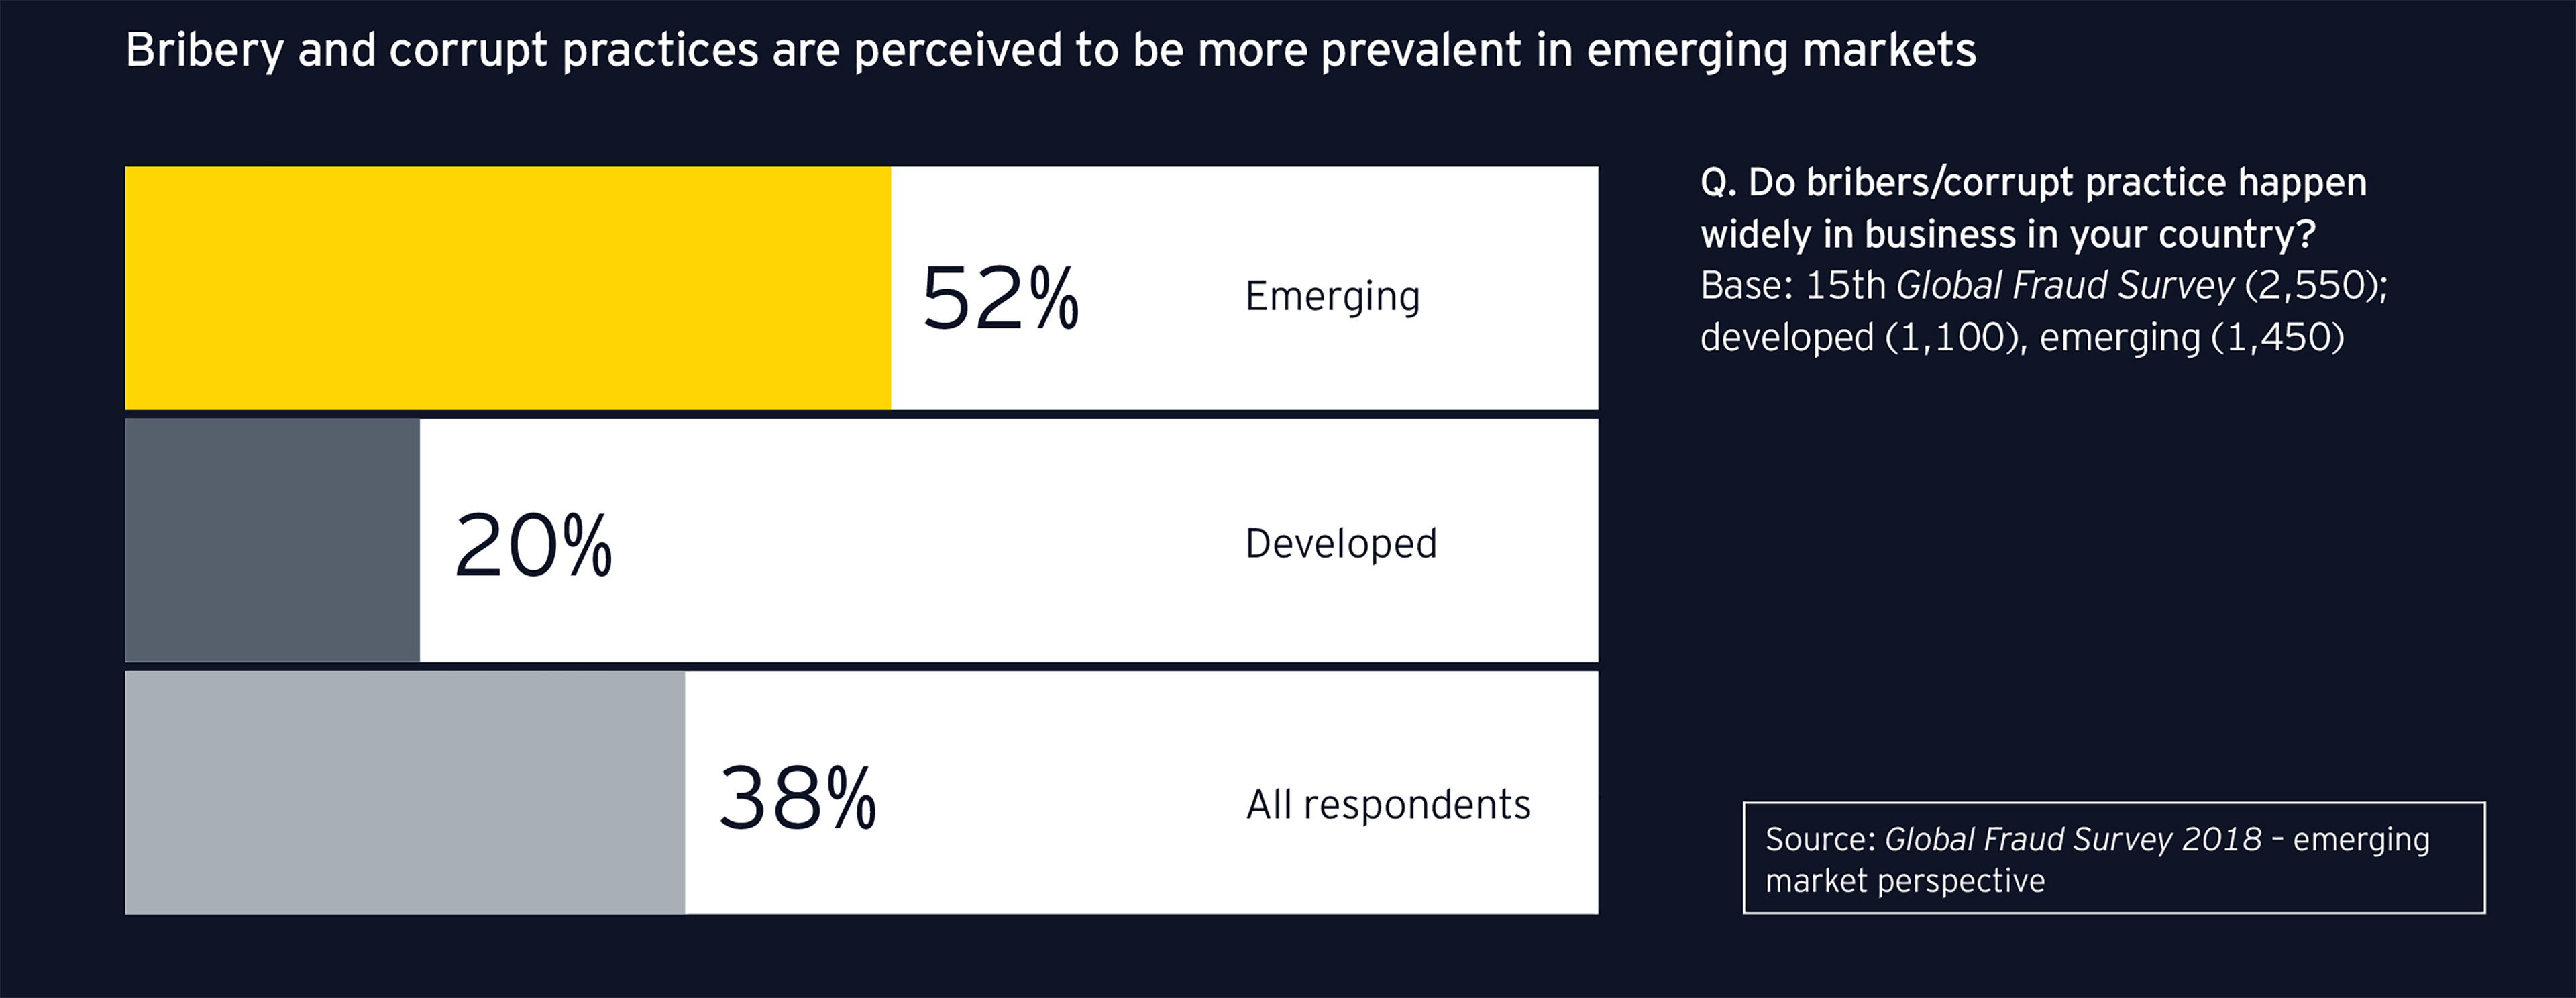 ey-corrupt-practices-are-perceived-in-emerging-markets